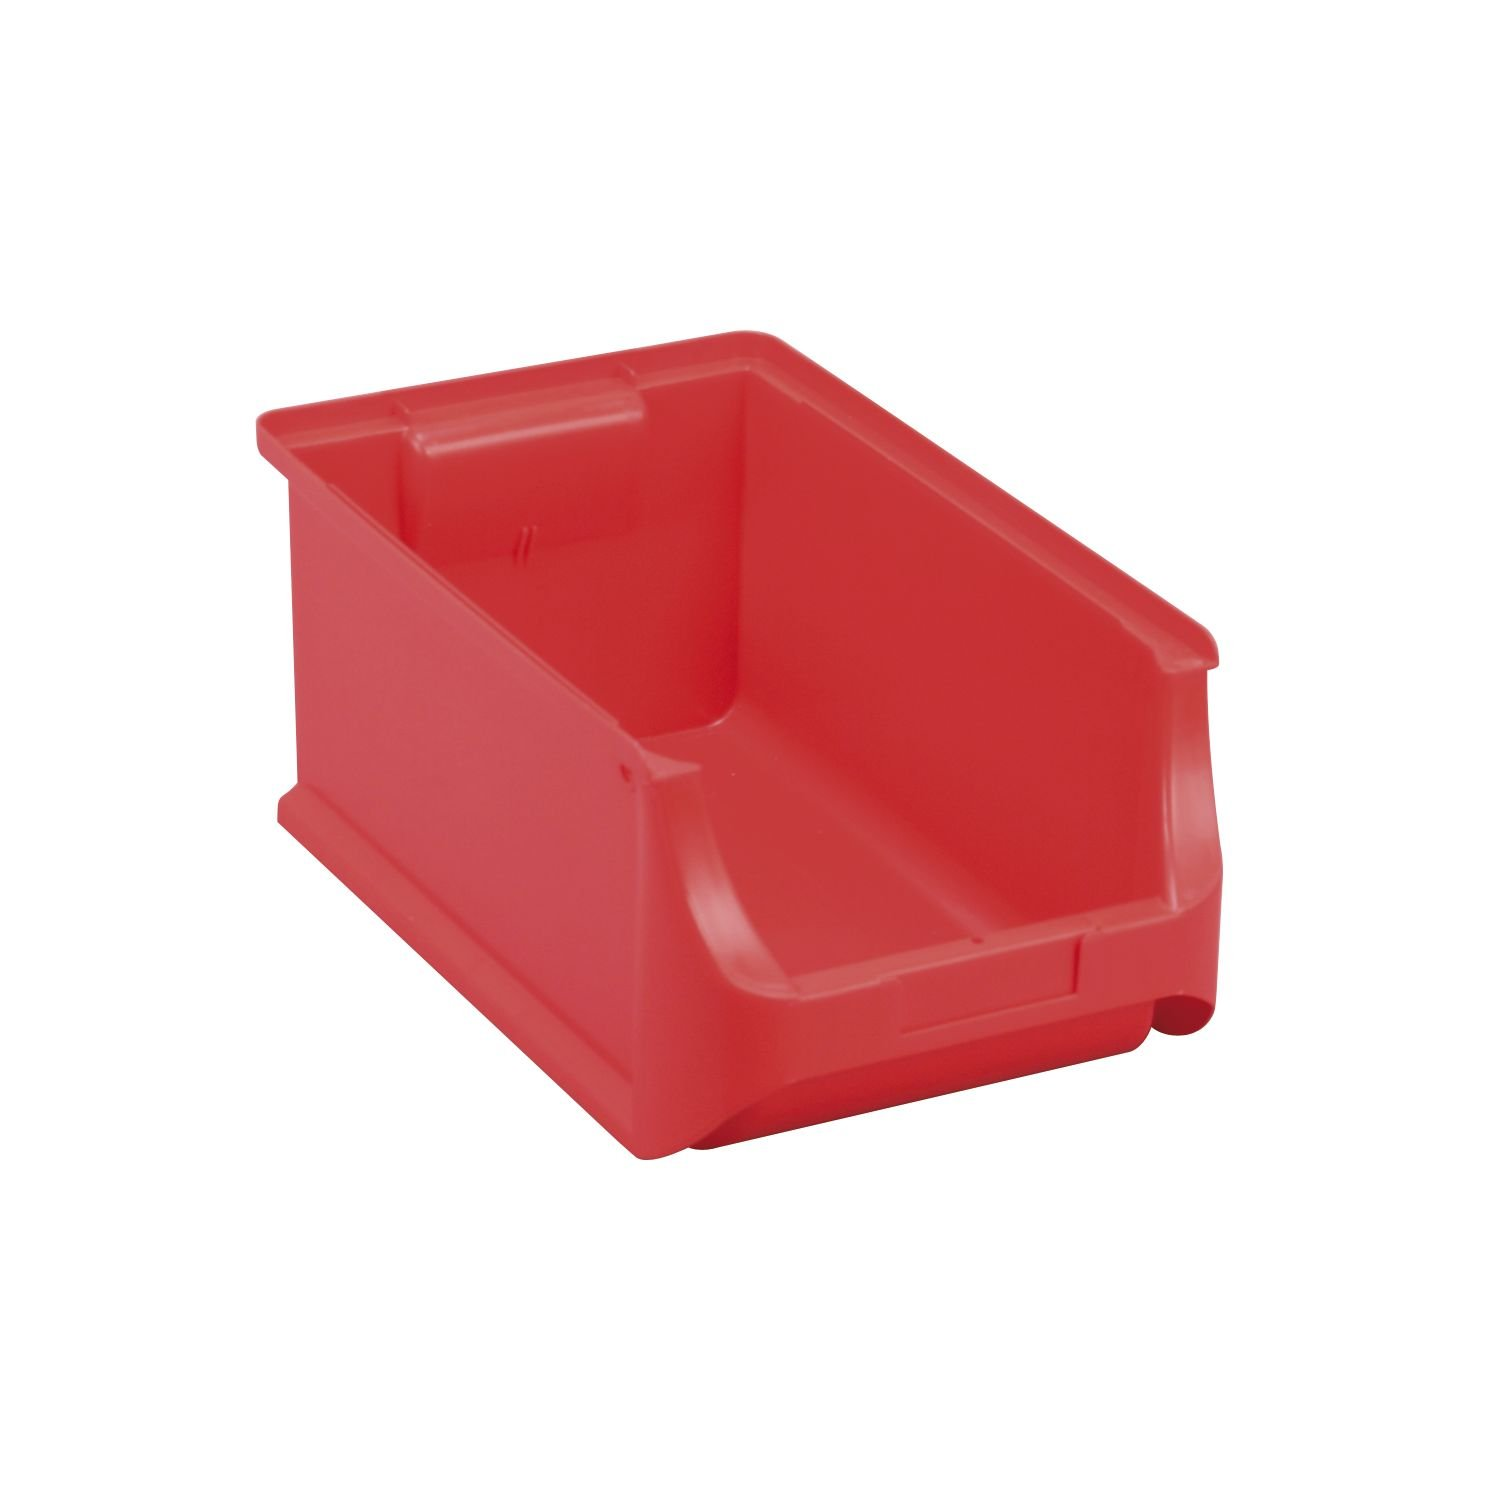 Allit 456213 Bac à bec, Taille 4, 355 x 205 x 150mm, Rouge